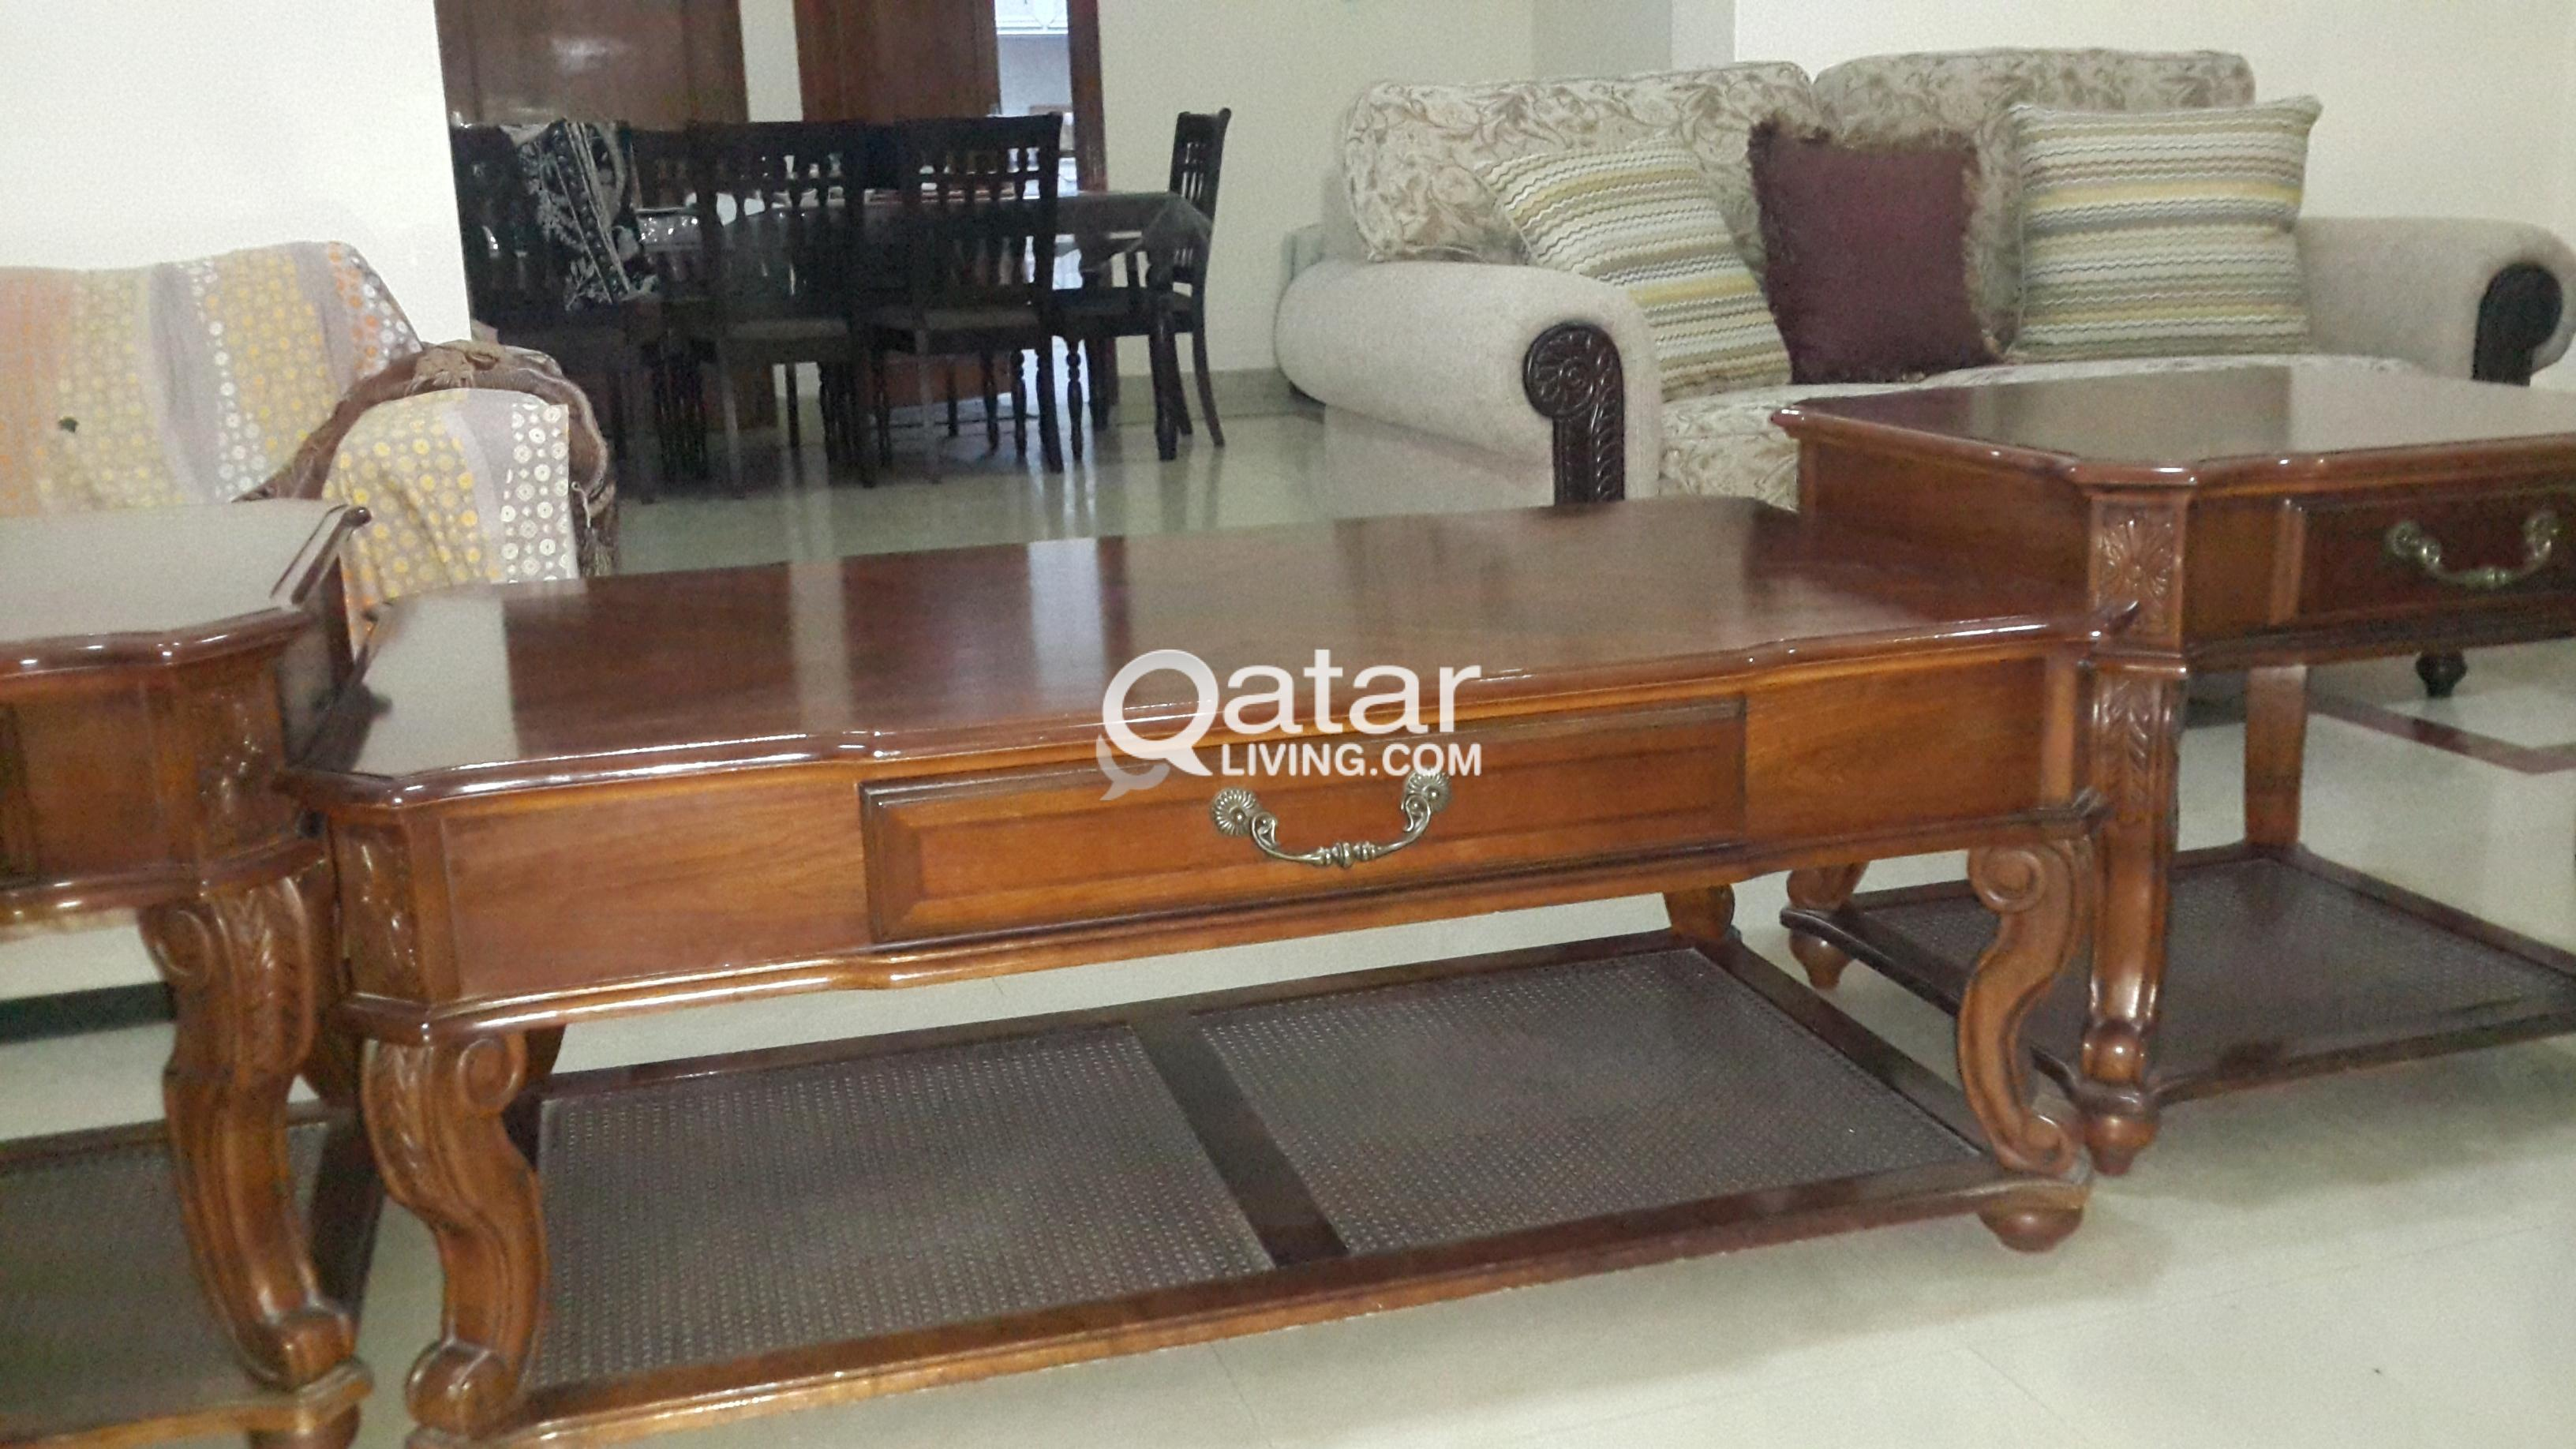 fancy tables set of 3 for sale qatar living